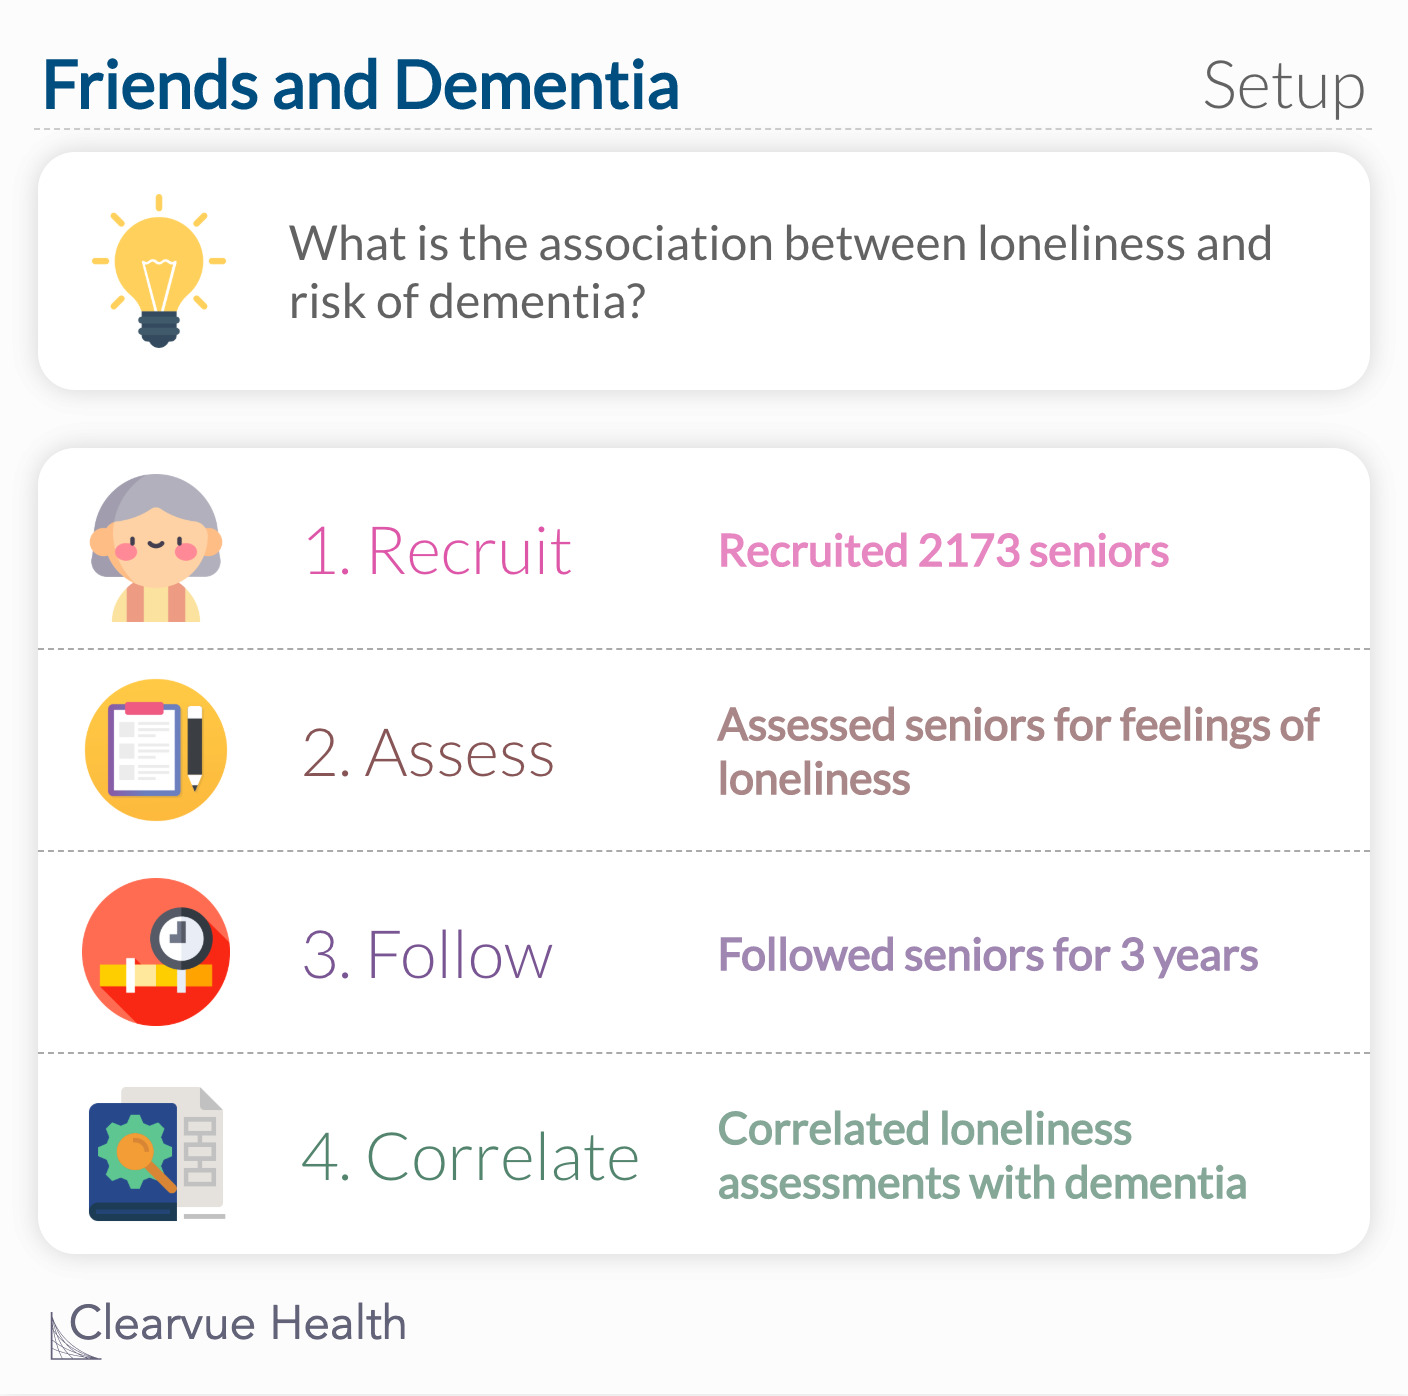 What is the association between loneliness and risk of dementia?